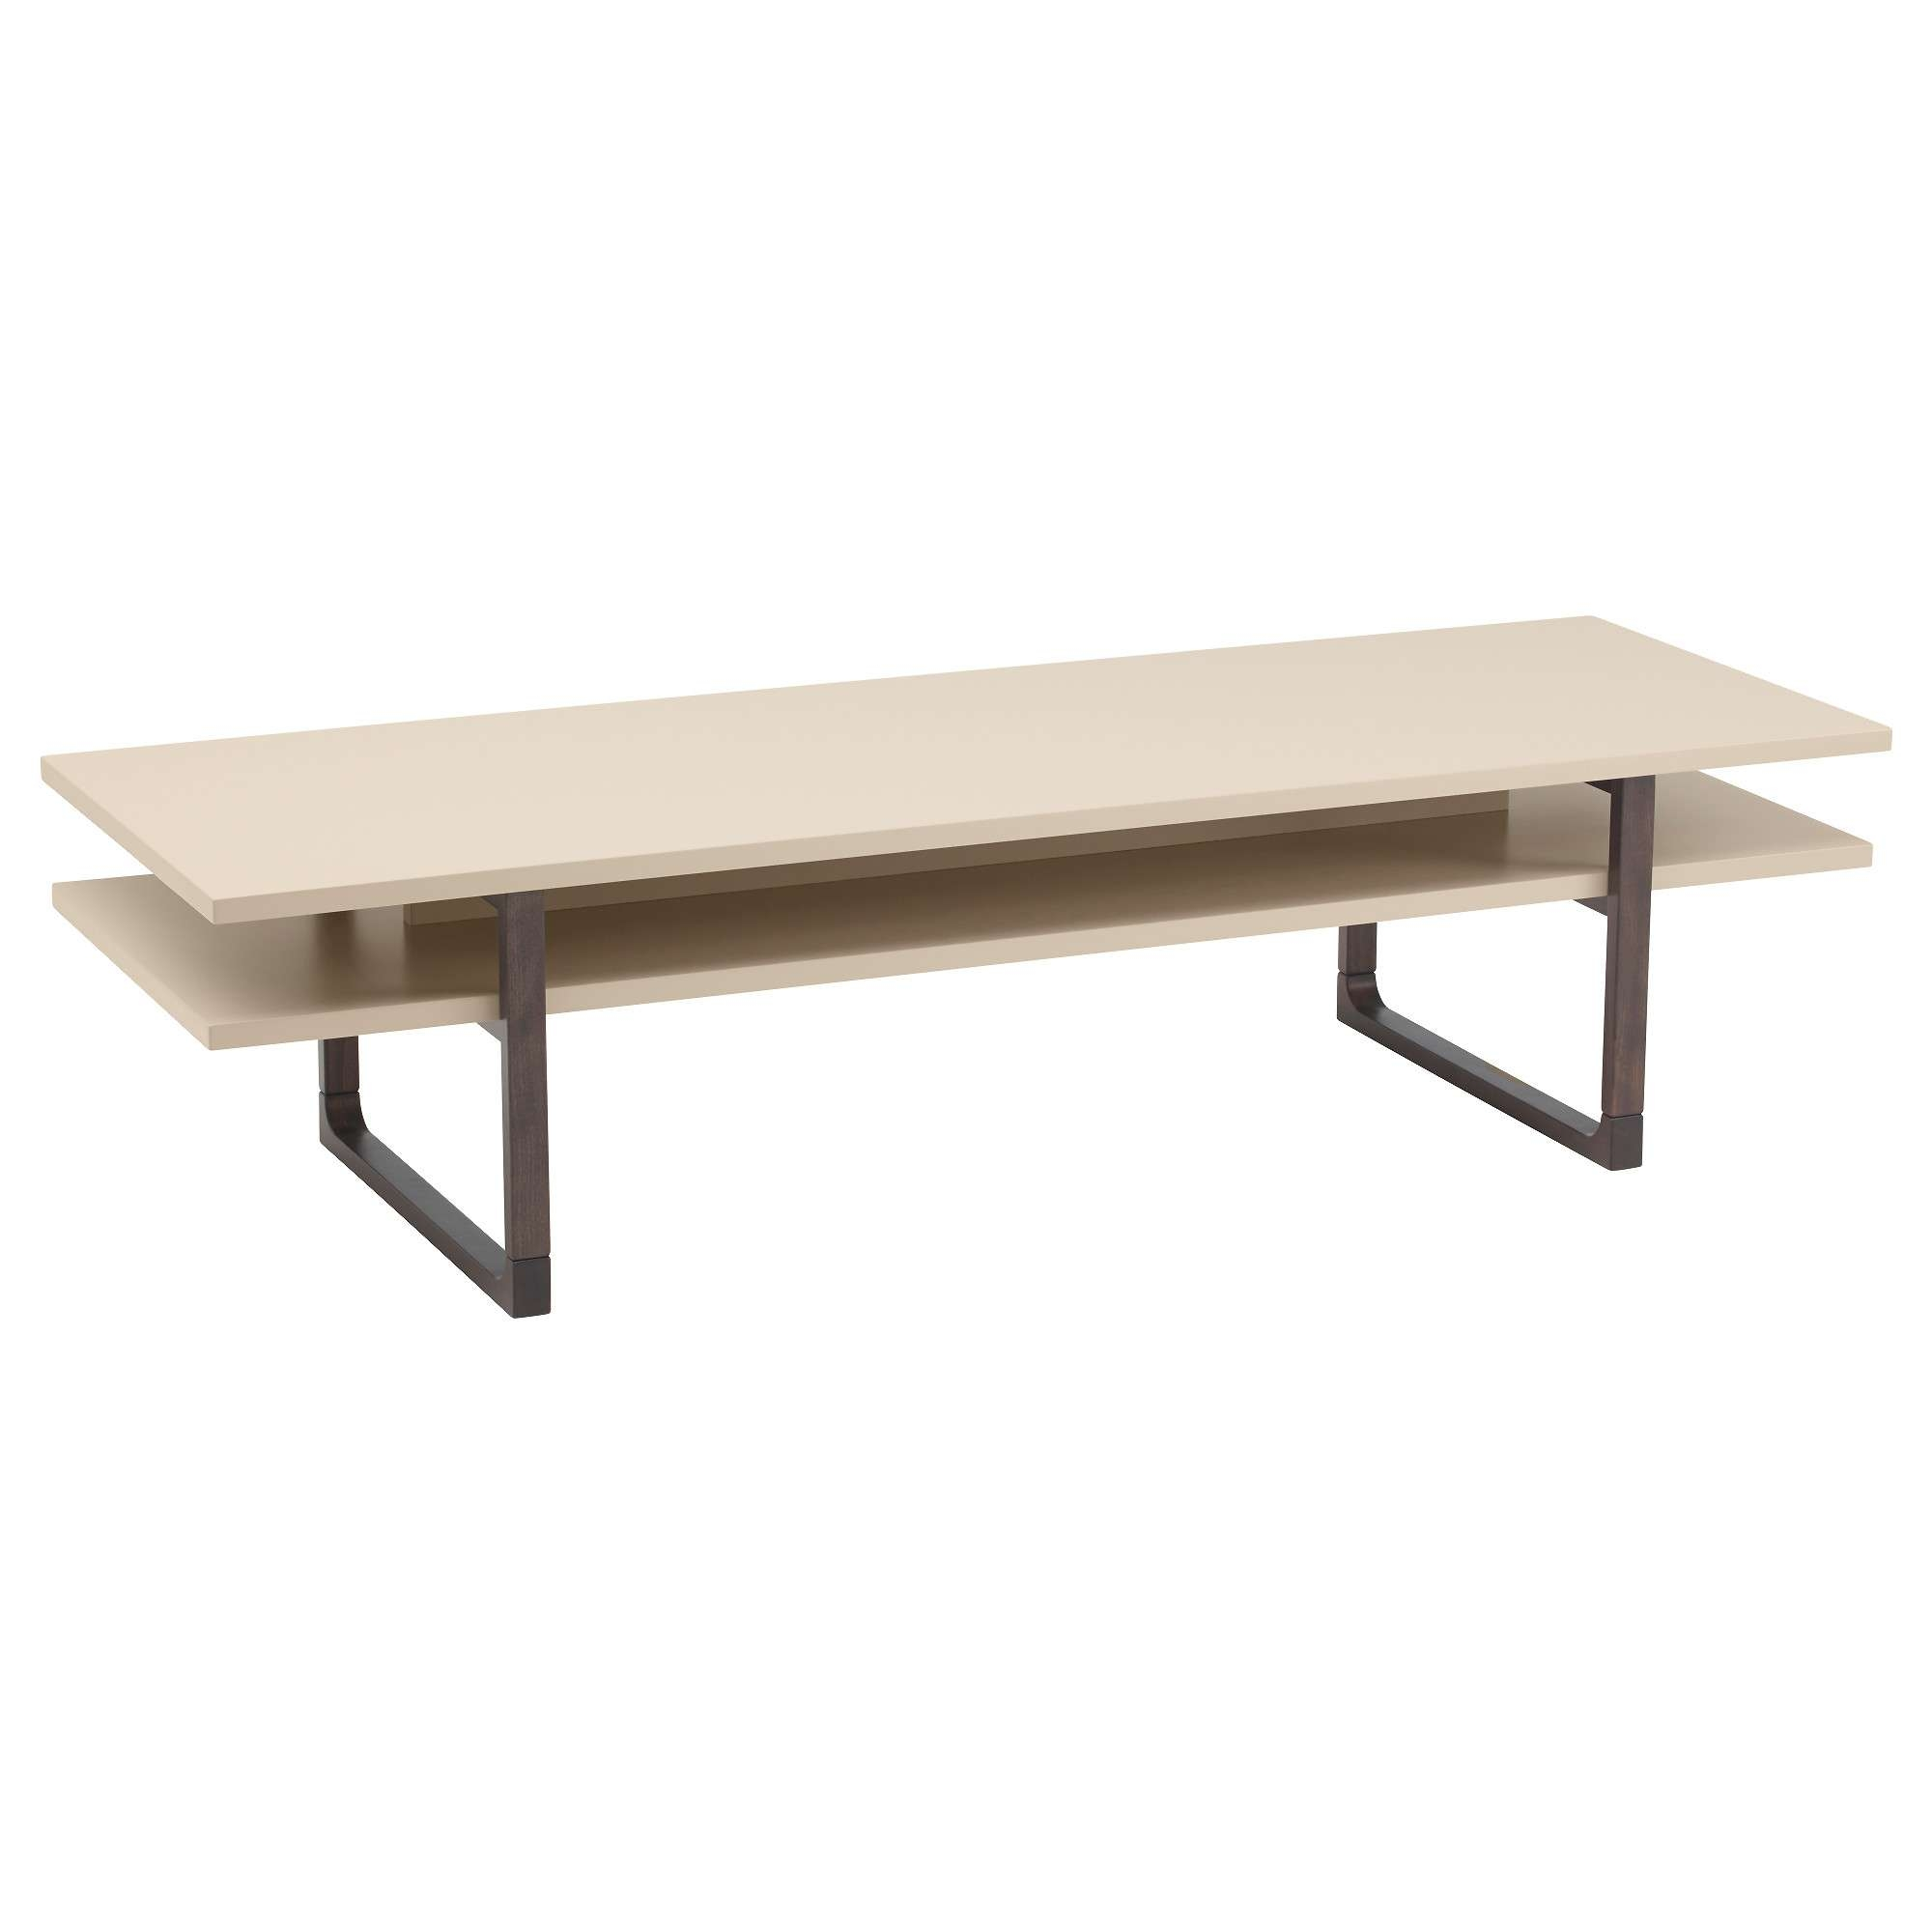 Favorite Rectangular Coffee Tables Pertaining To Rissna Coffee Table – Ikea (View 8 of 20)